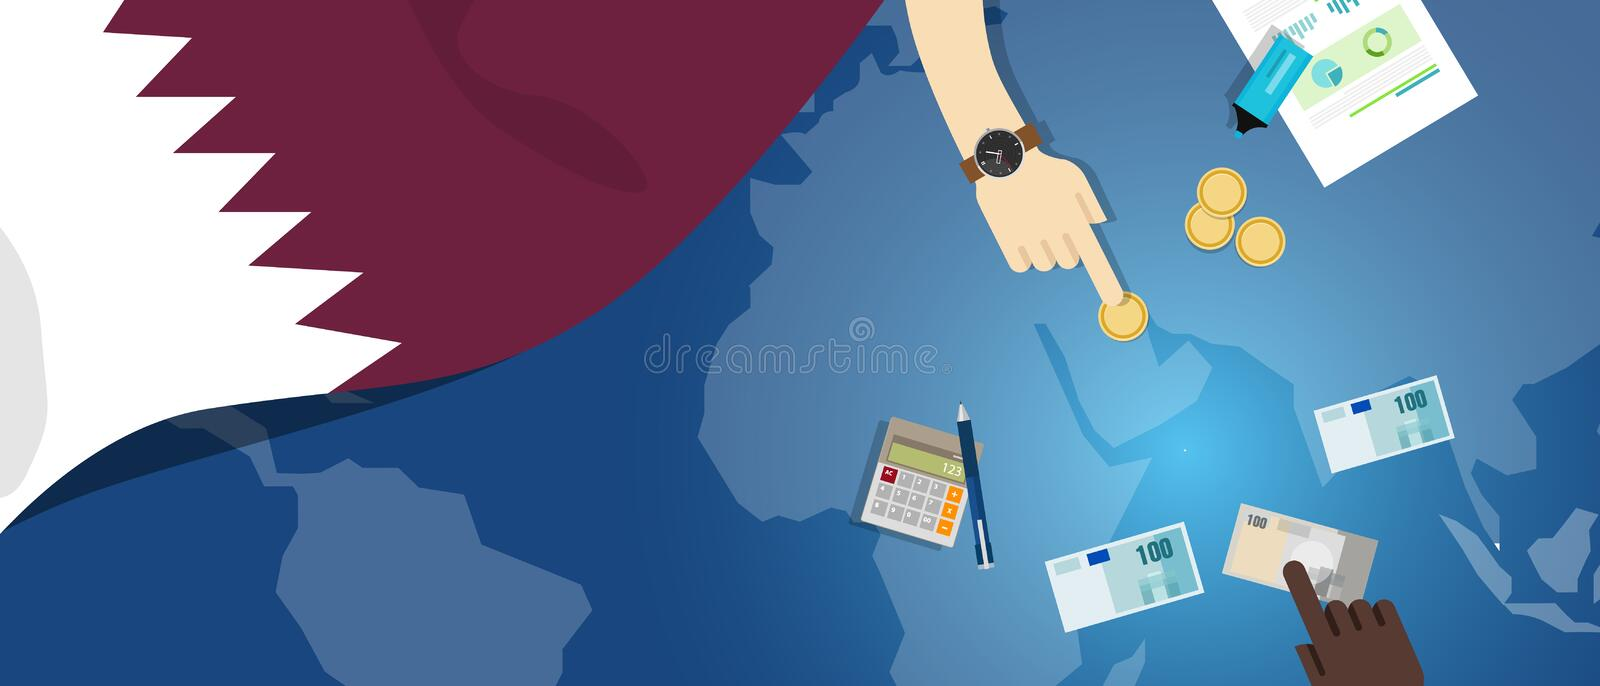 Qatar economy fiscal money trade concept illustration of financial banking budget with flag map and currency. Vector vector illustration